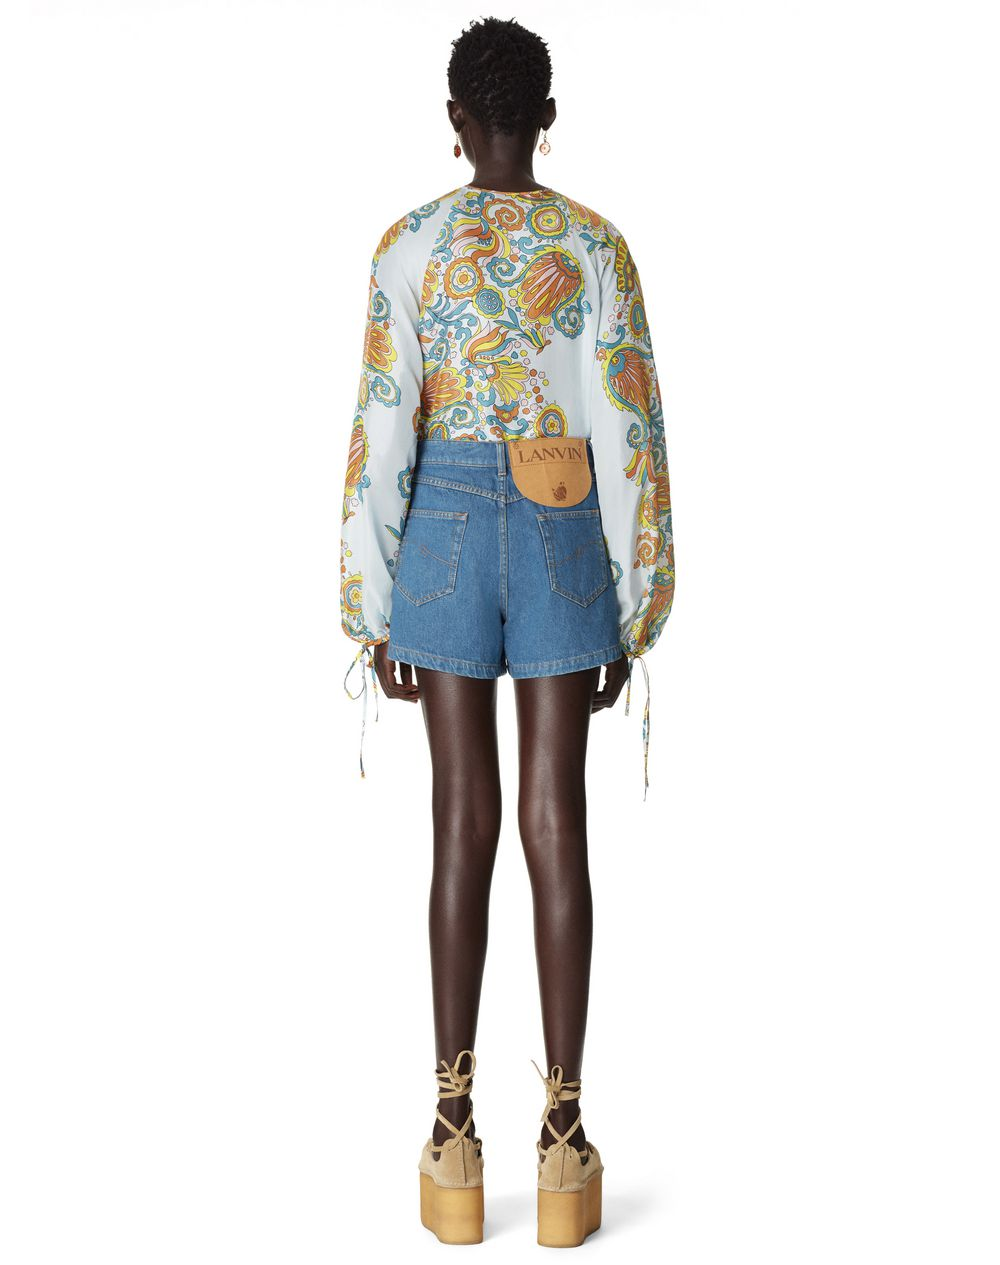 ASYMMETRC DENIM SHORTS - Lanvin